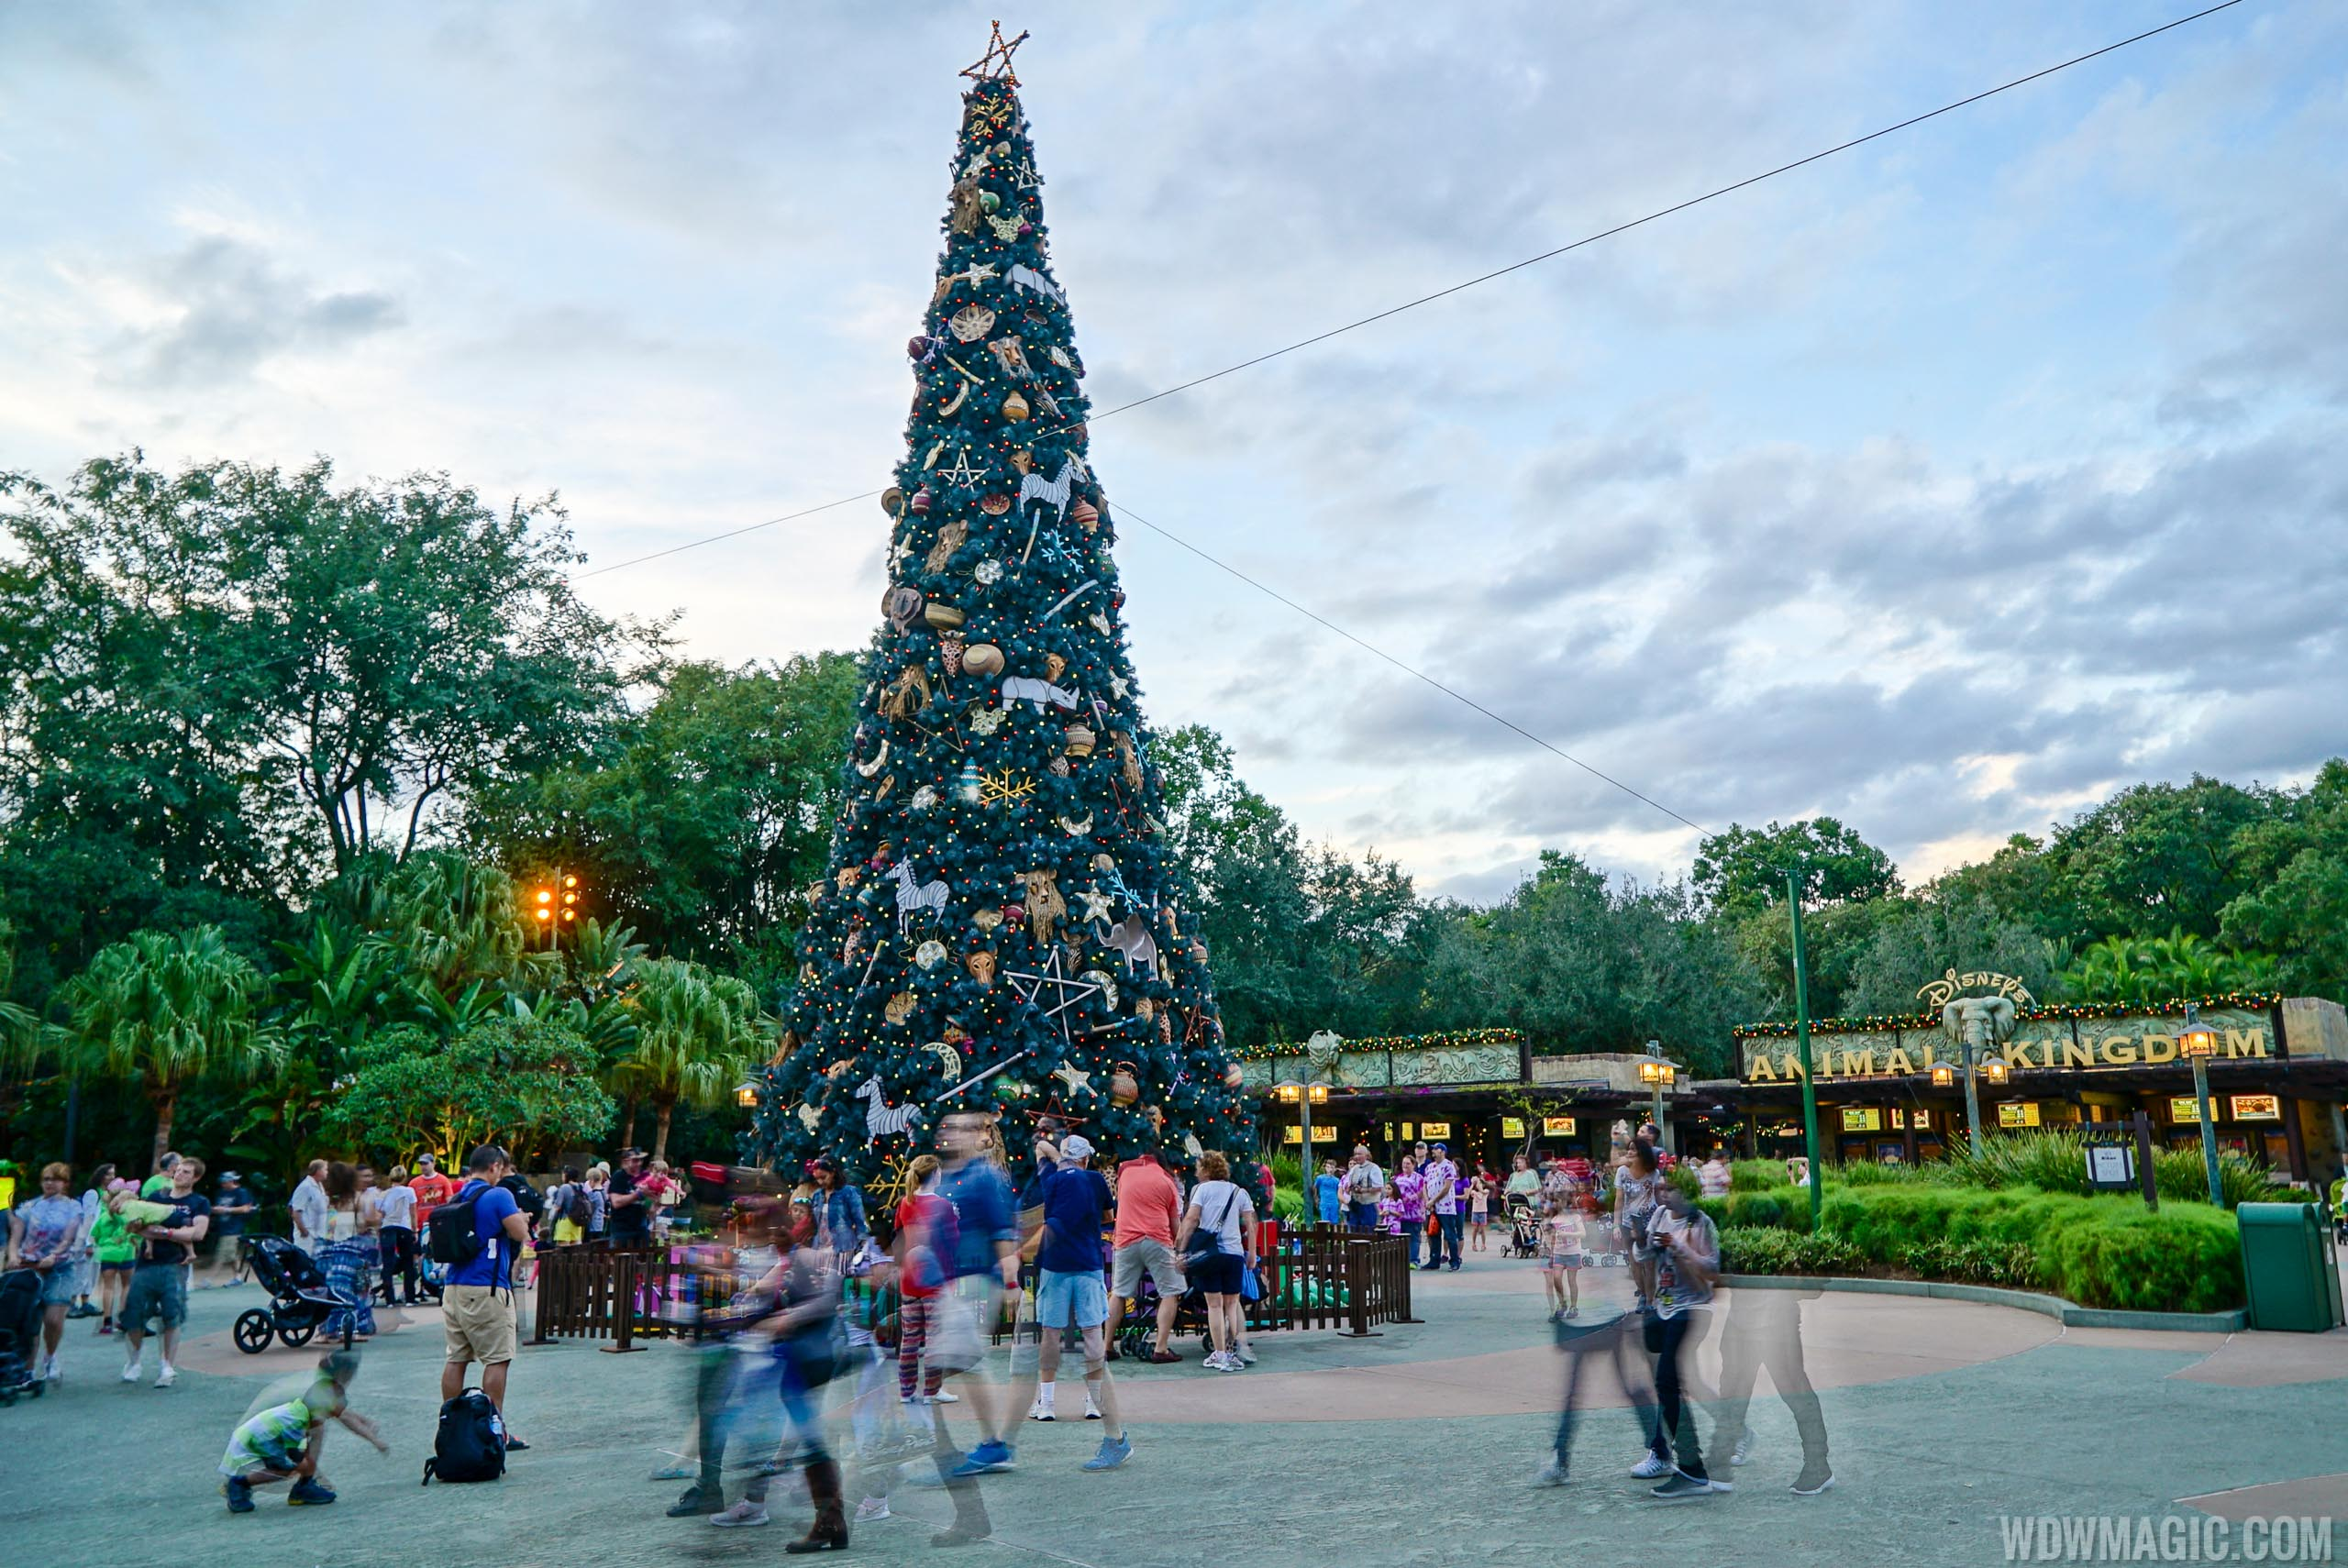 Christmas Tree at Disney's Animal Kingdom